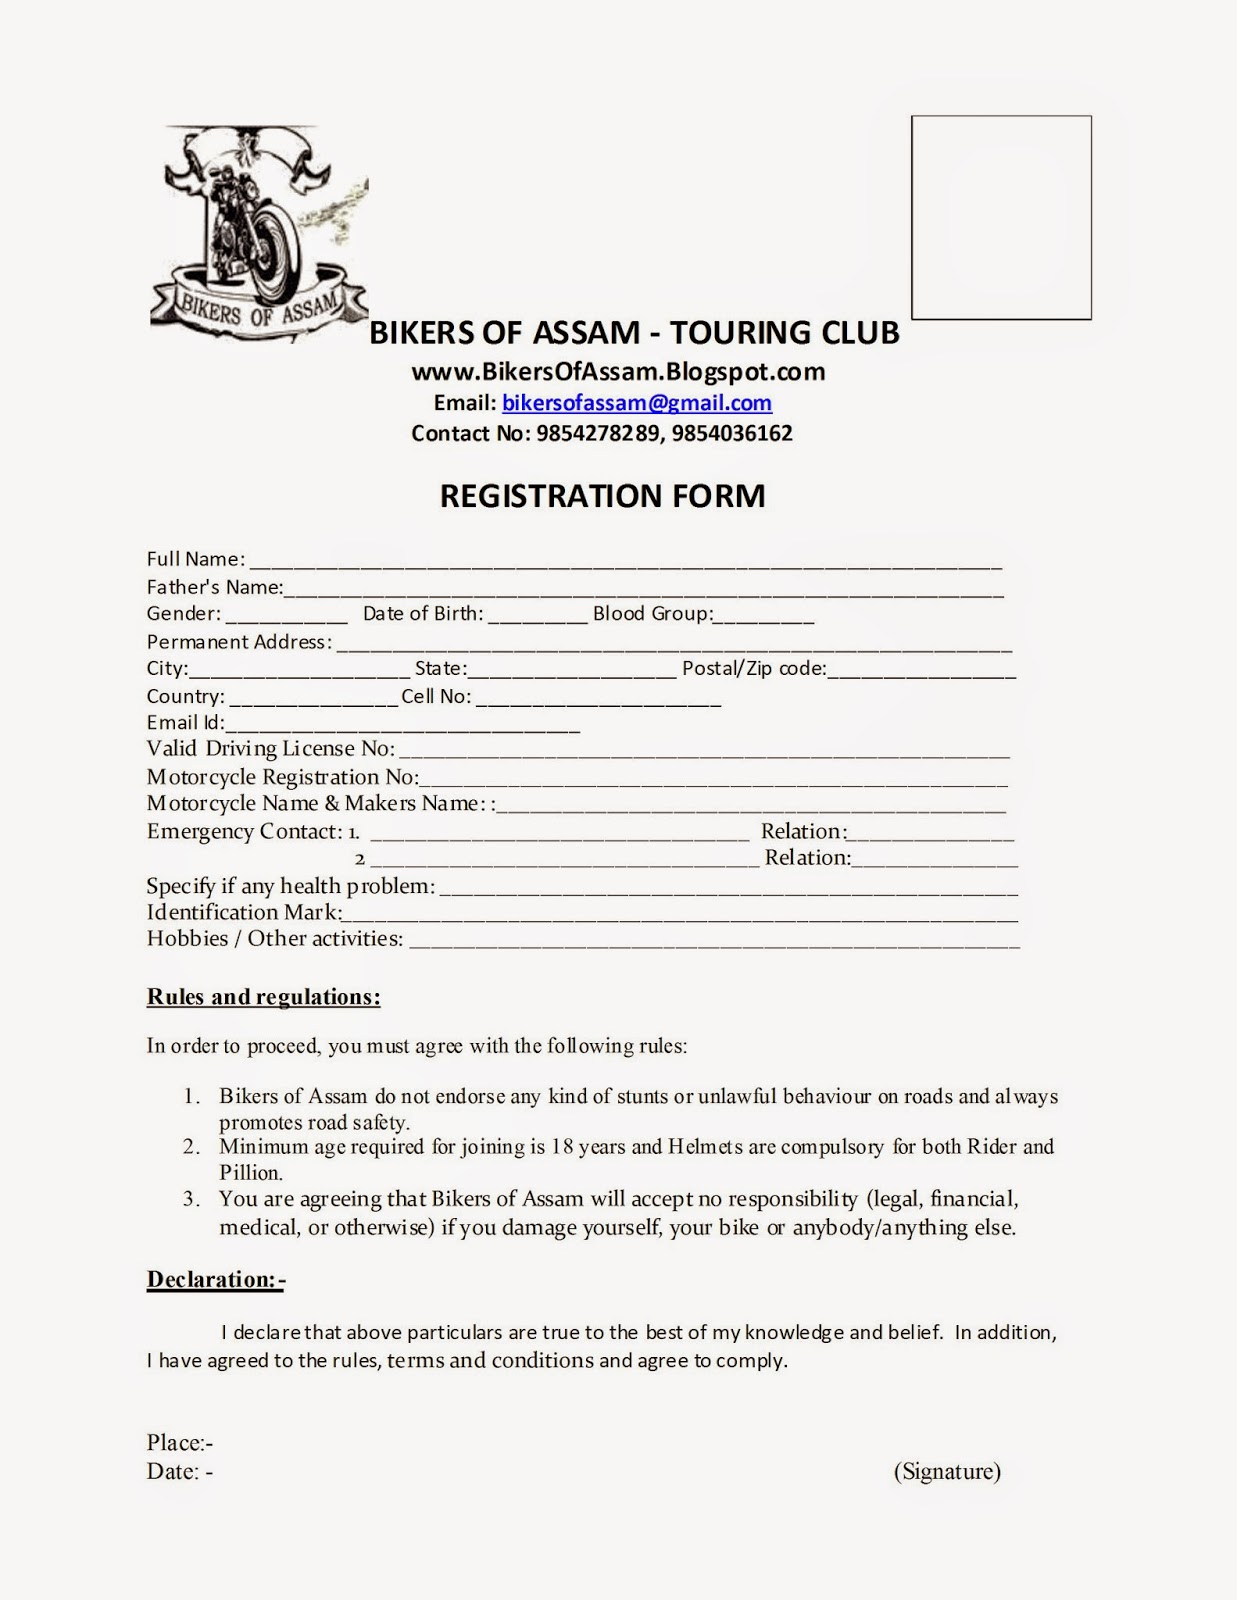 motorcycle club application form Bikers Of Assam Touring Club: Bikers of Assam - Touring Club ...